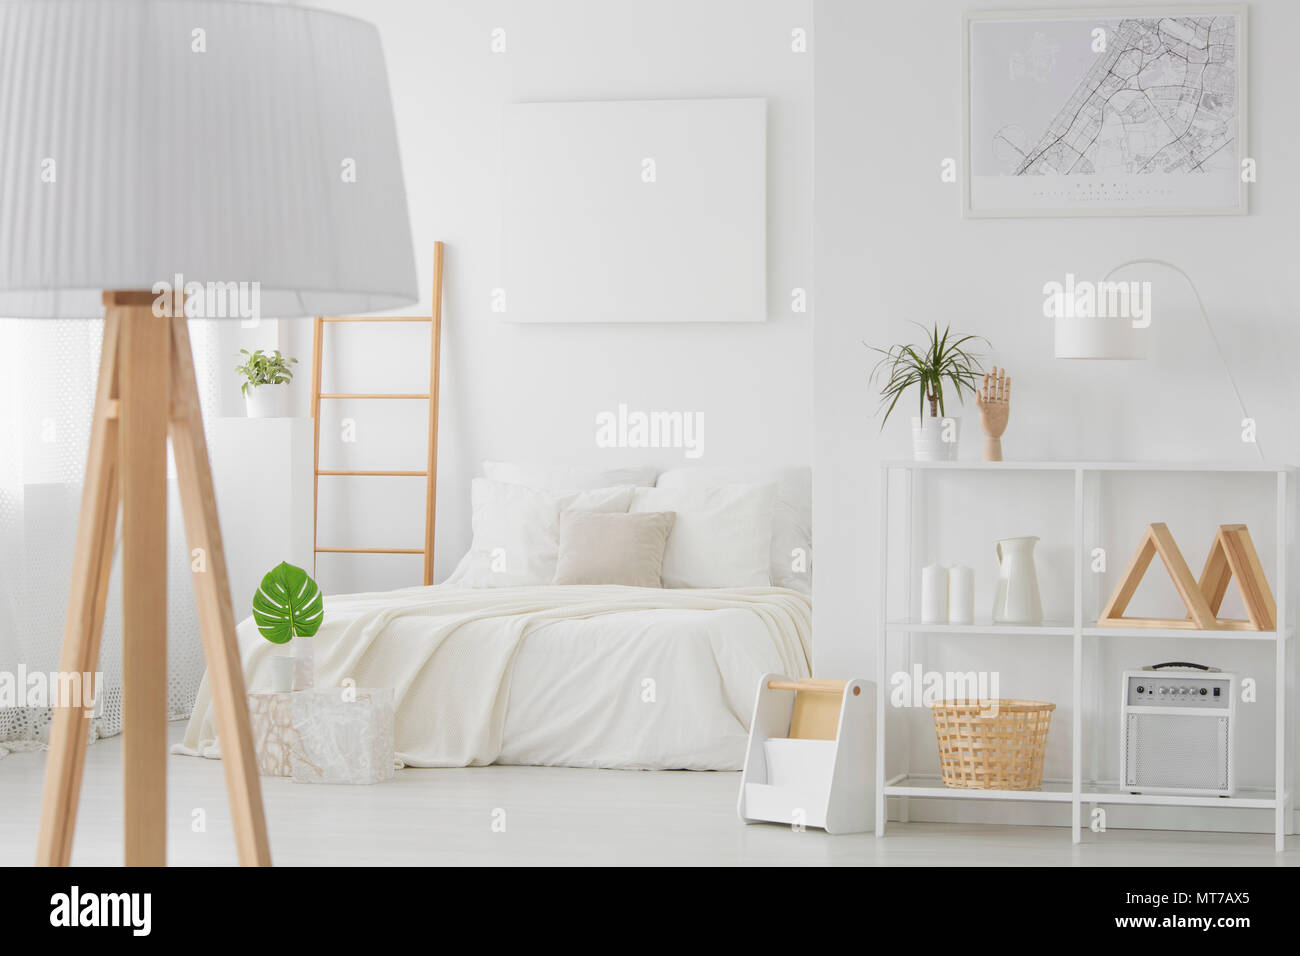 Empty Mockup Poster Hanging On The Wall Above King Size Bed In White Bedroom Interior With Wooden Decor Stock Photo Alamy